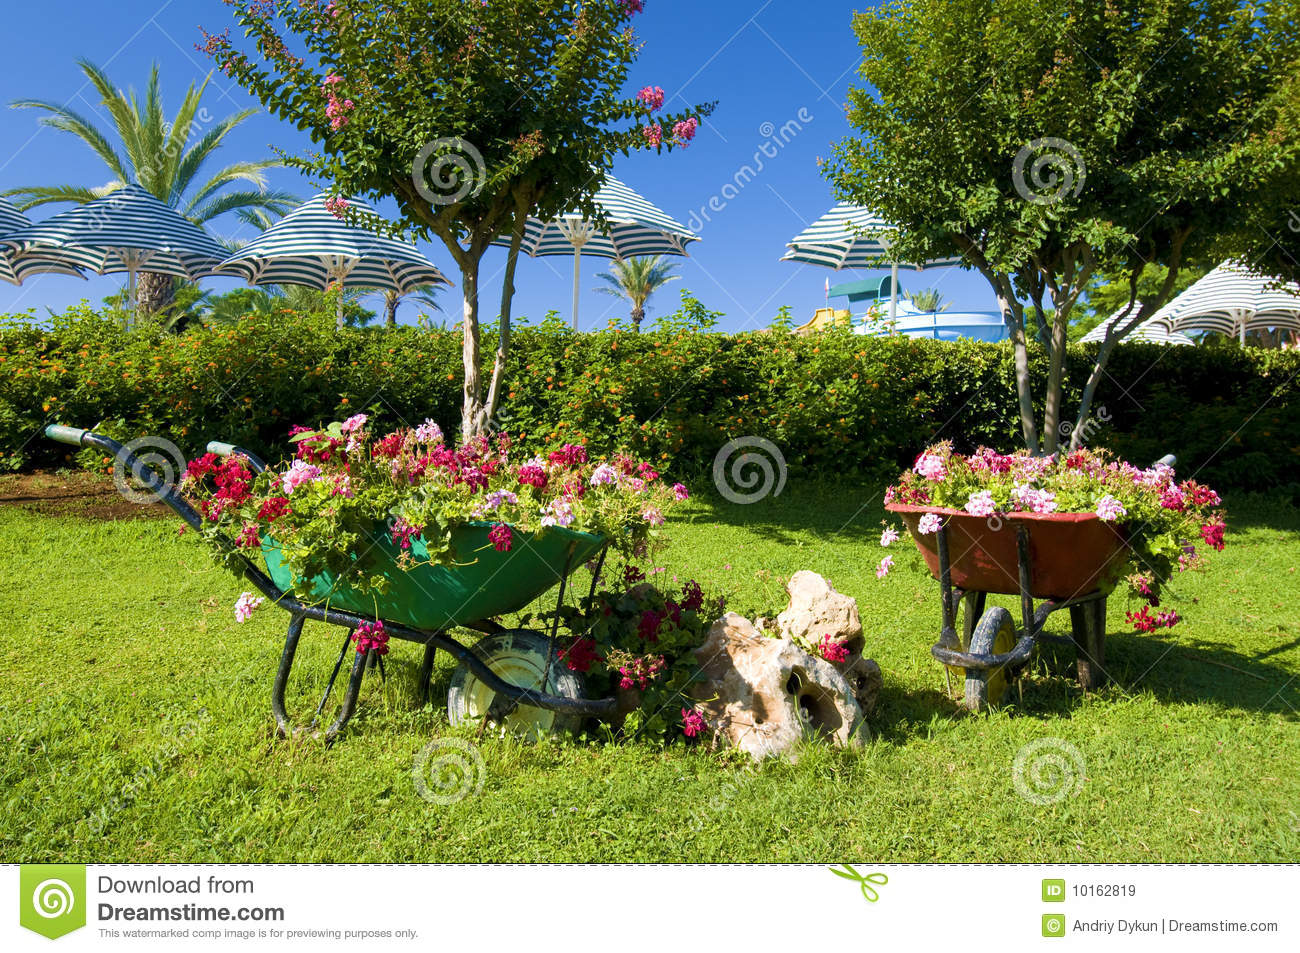 Flower garden with carts stock image. Image of city, gardening ...